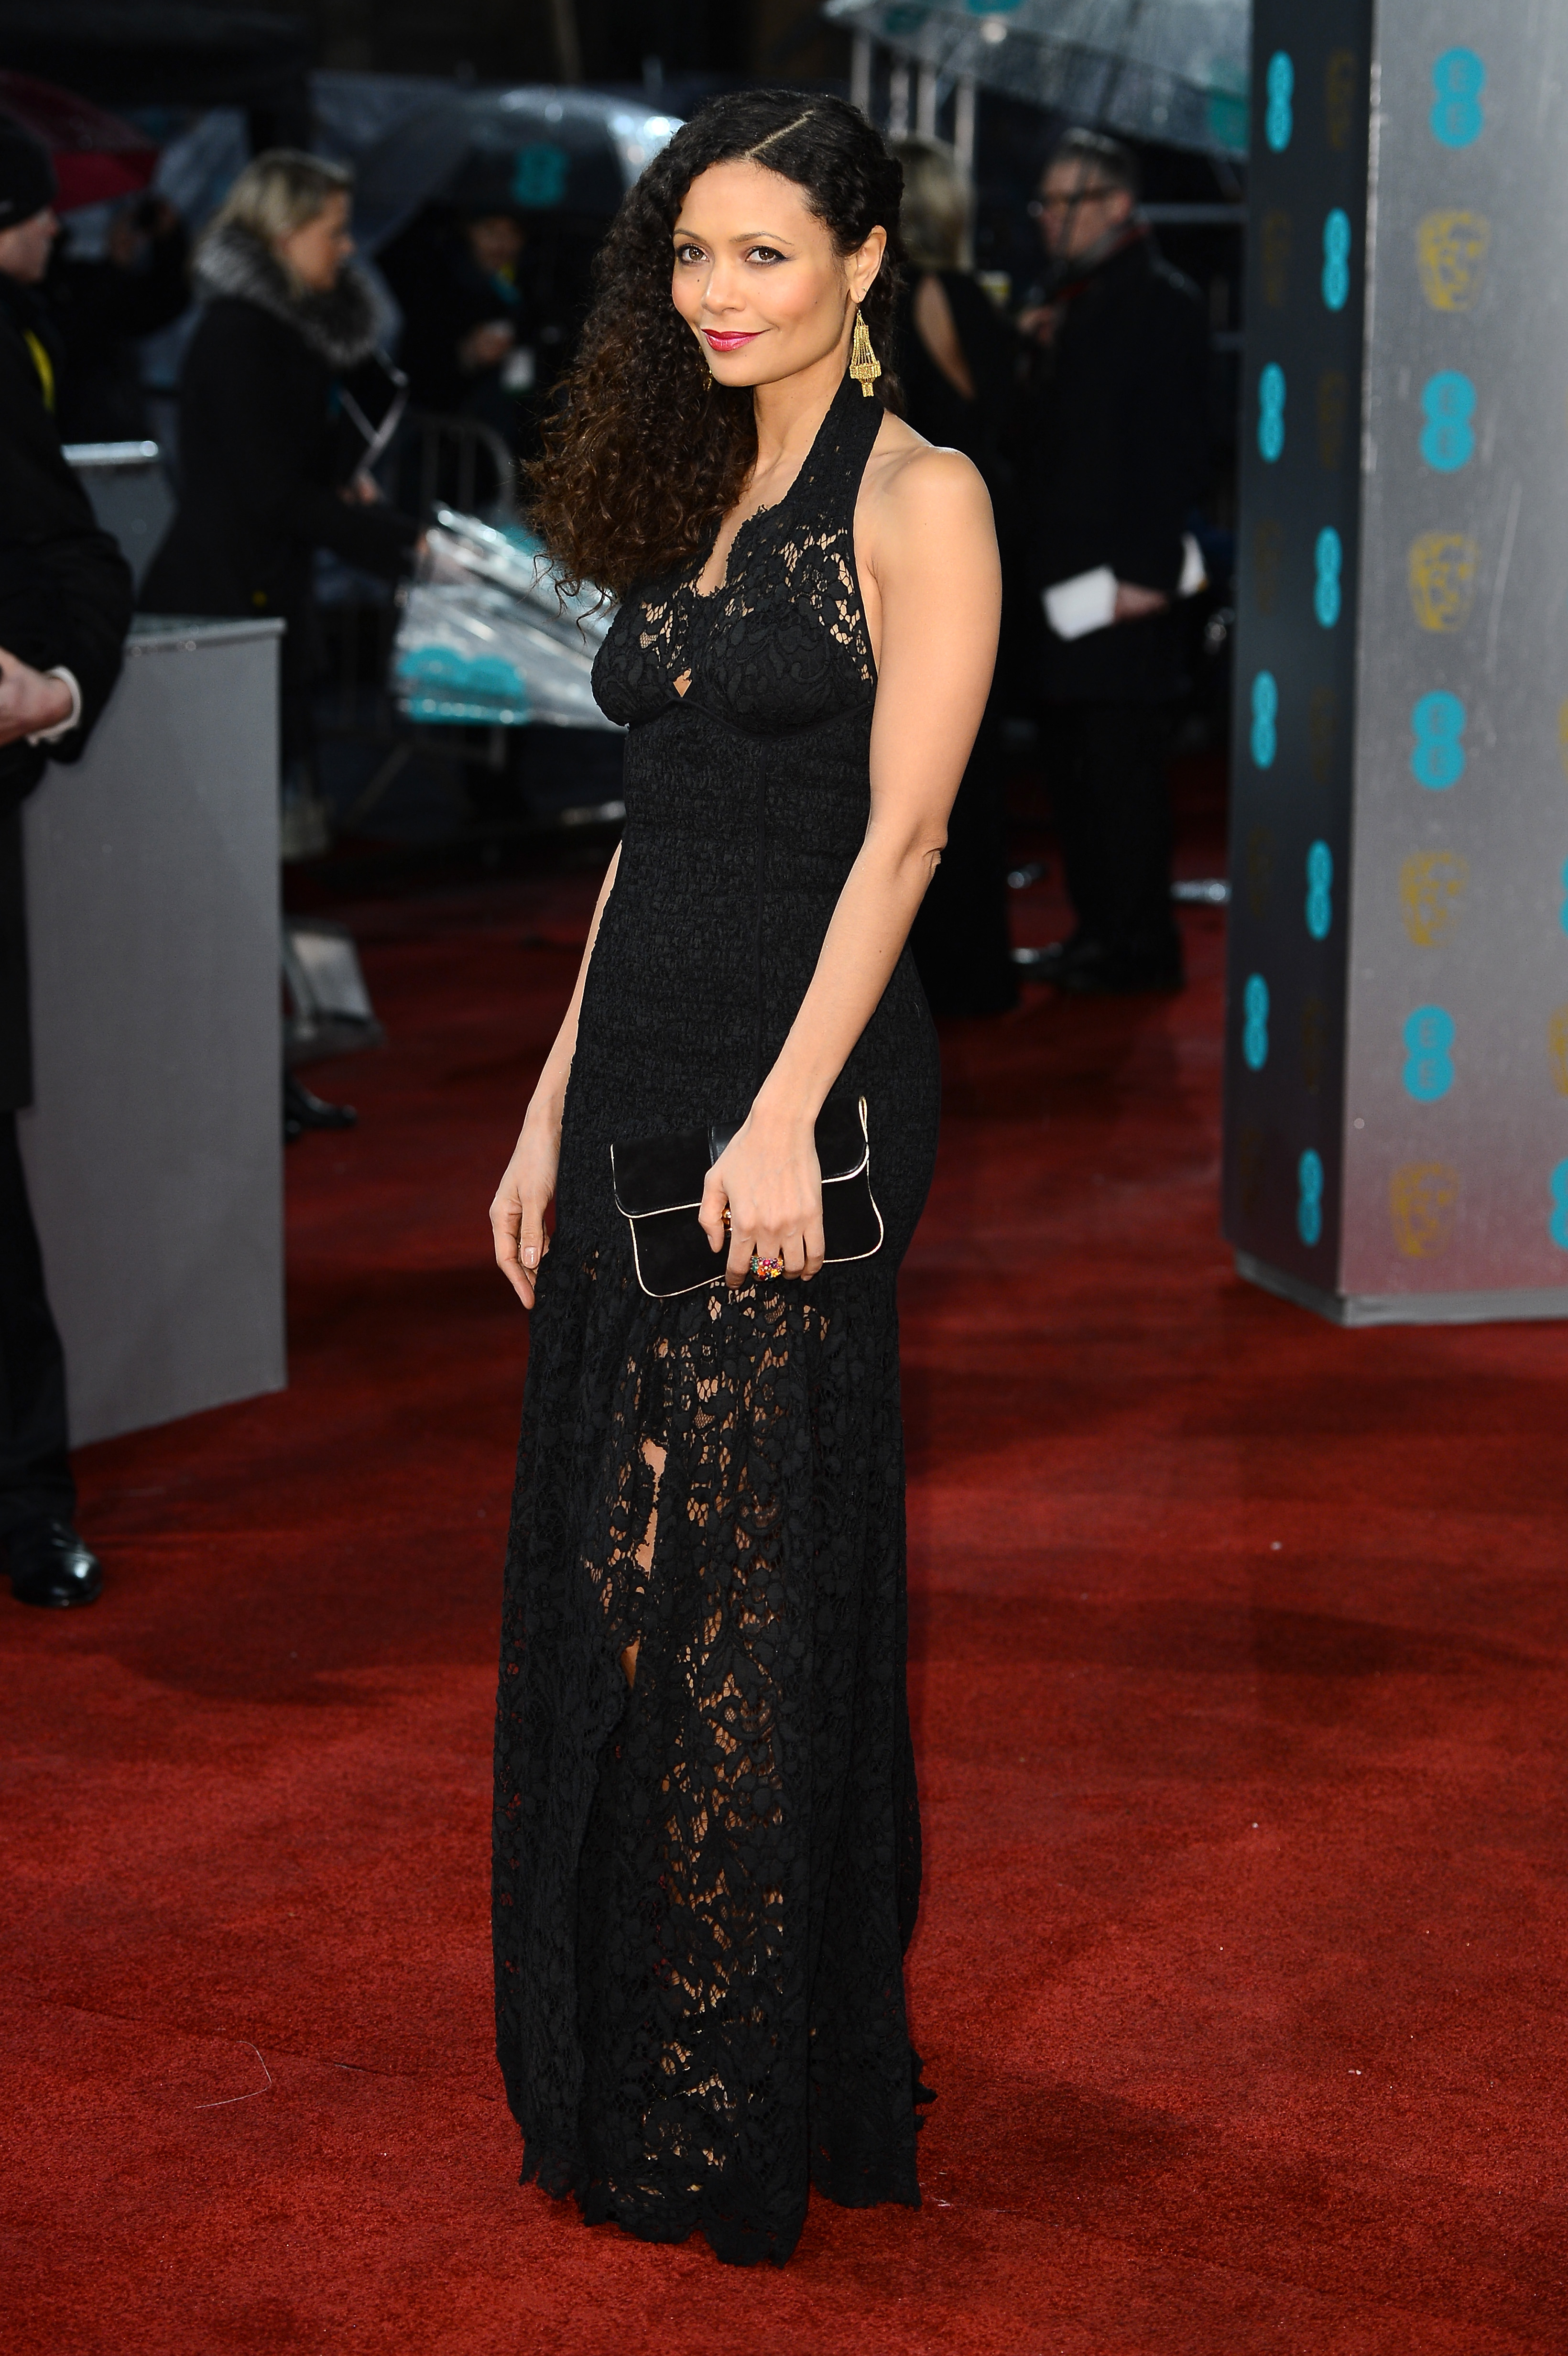 Thandie Newton stunned in a lace gown.